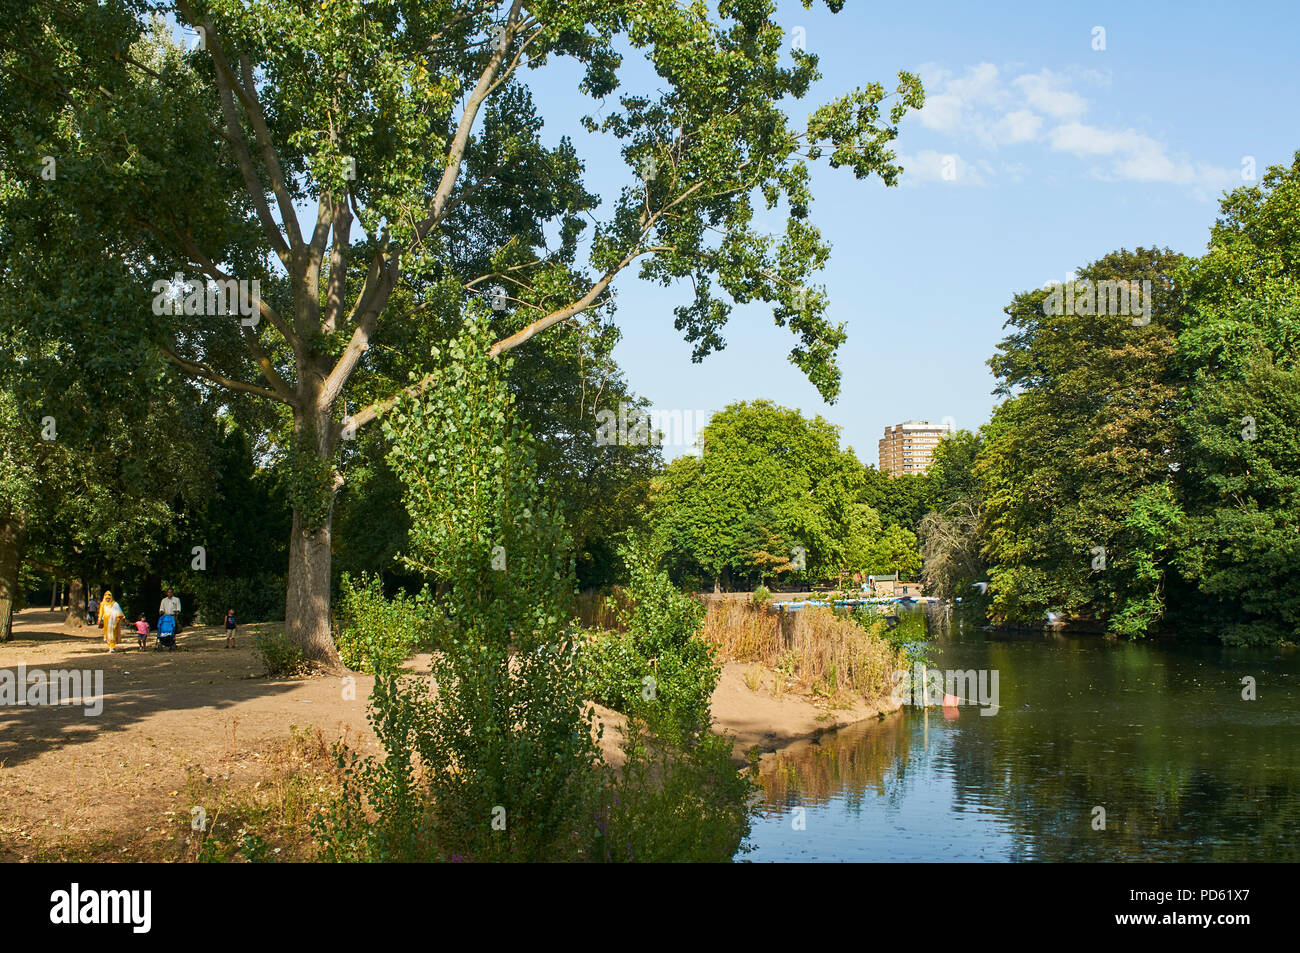 Victoria Park and lake in London's East End, in early August, during the 2018 heatwave - Stock Image